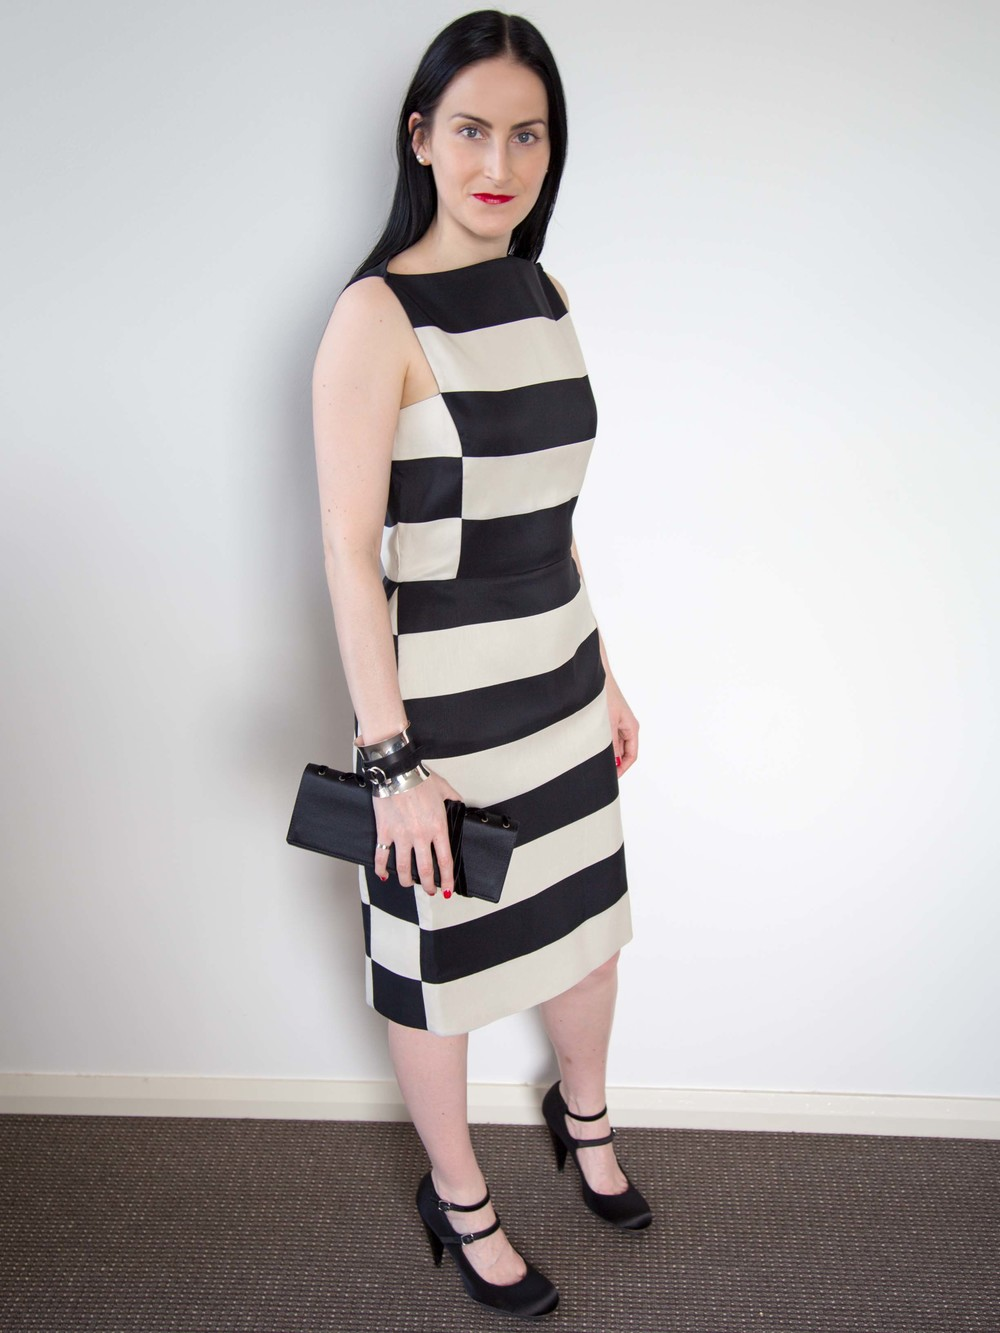 Lanvin Striped Dress, Georg Jensen Cuff, Yves Saint Laurent Vintage Clutch, Lanvin Silk Satin Heels